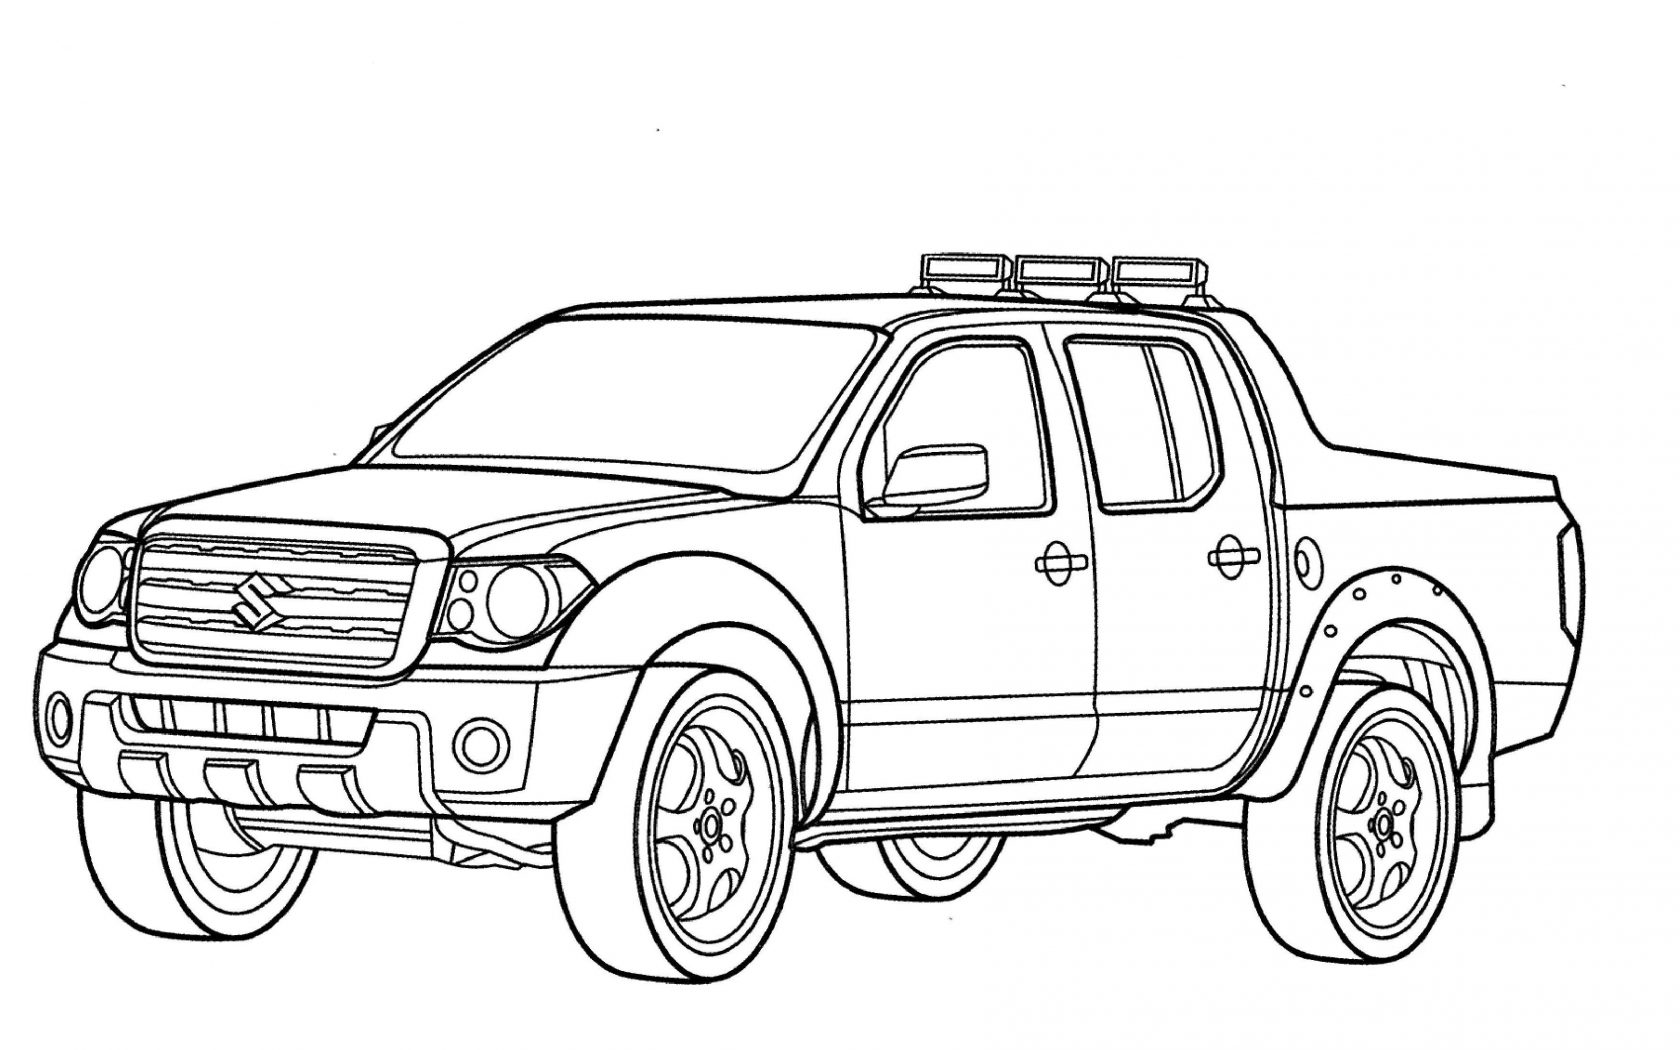 1680x1050 T Is For Truck Coloring Pages Pick Up And Car Adults Free